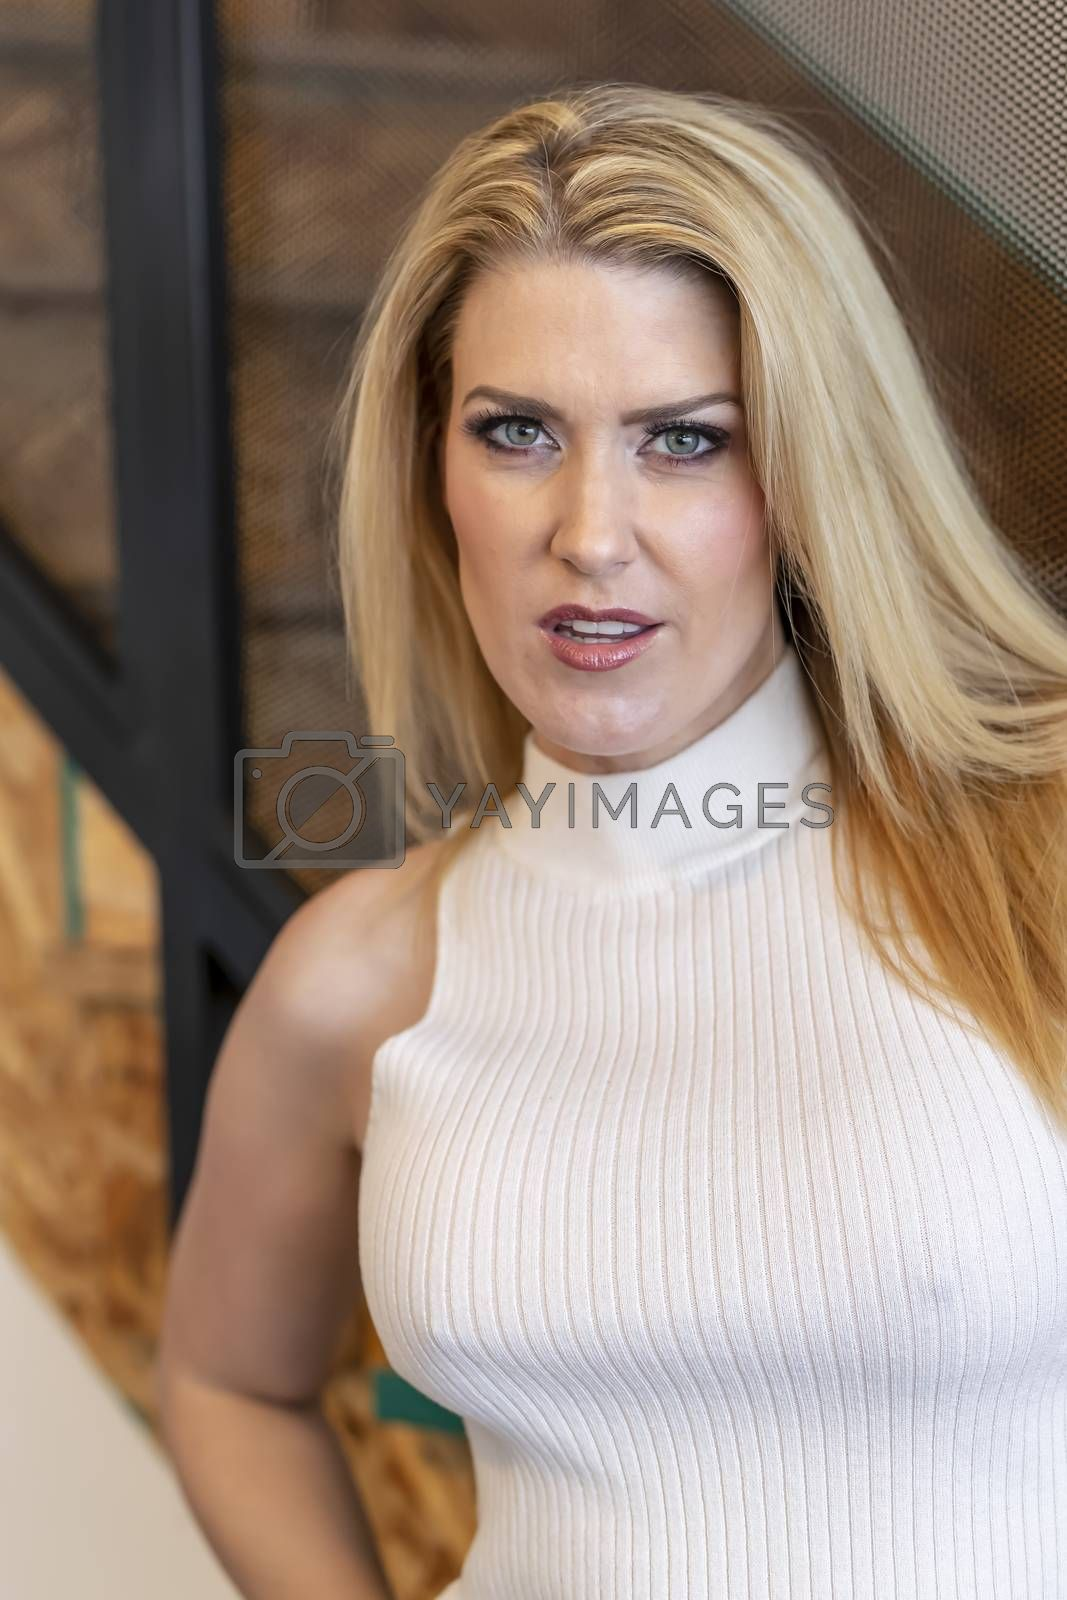 Royalty free image of Gorgeous Blonde Model Enjoying A Day At Home Before Work by actionsports